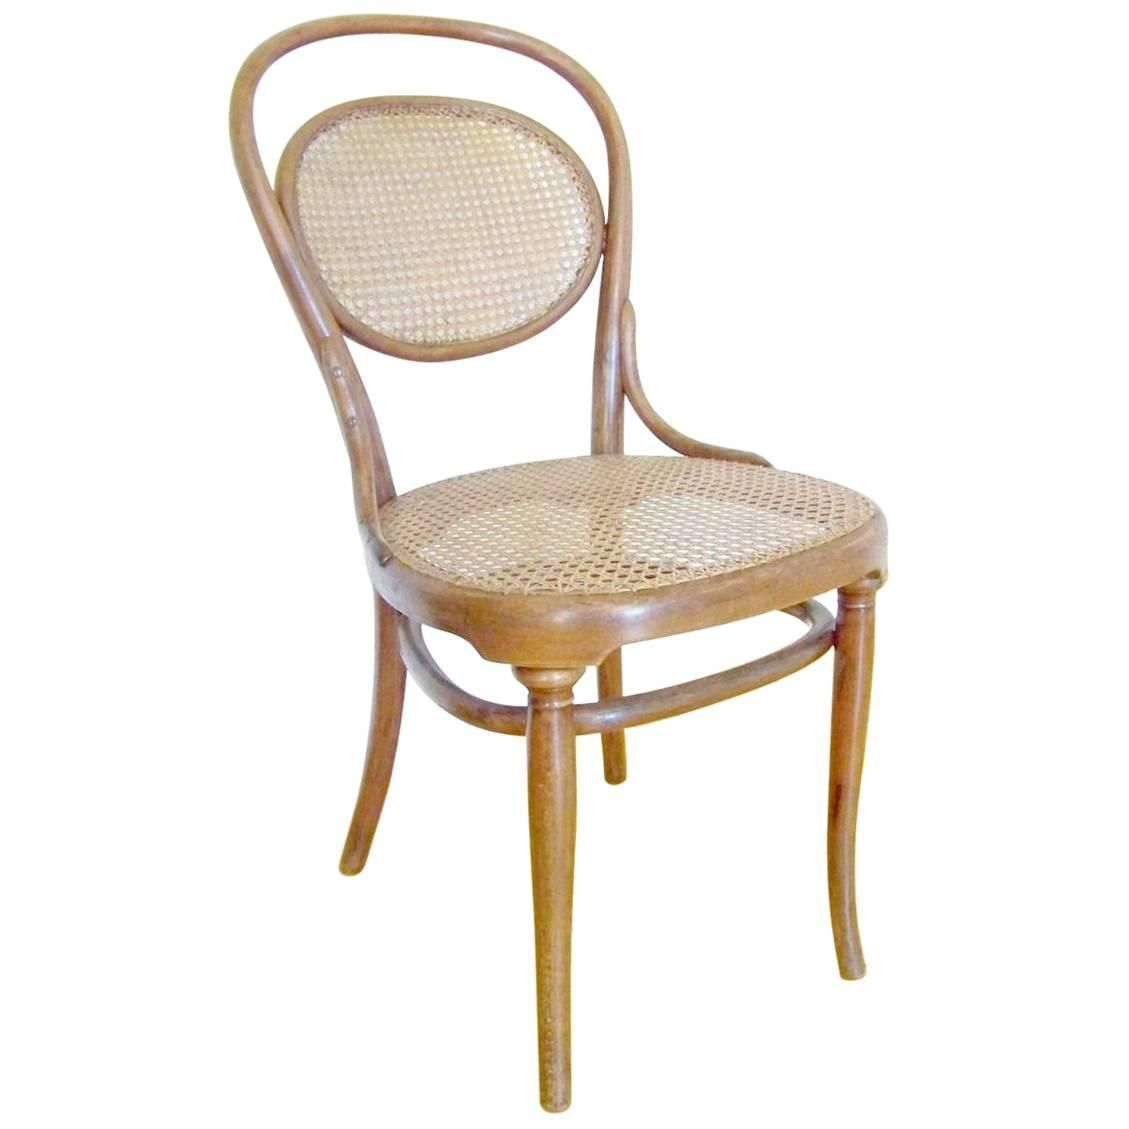 Chair Gebr Der Thonet Model Nr 11 Circa 1875 House # Muebles Fischel